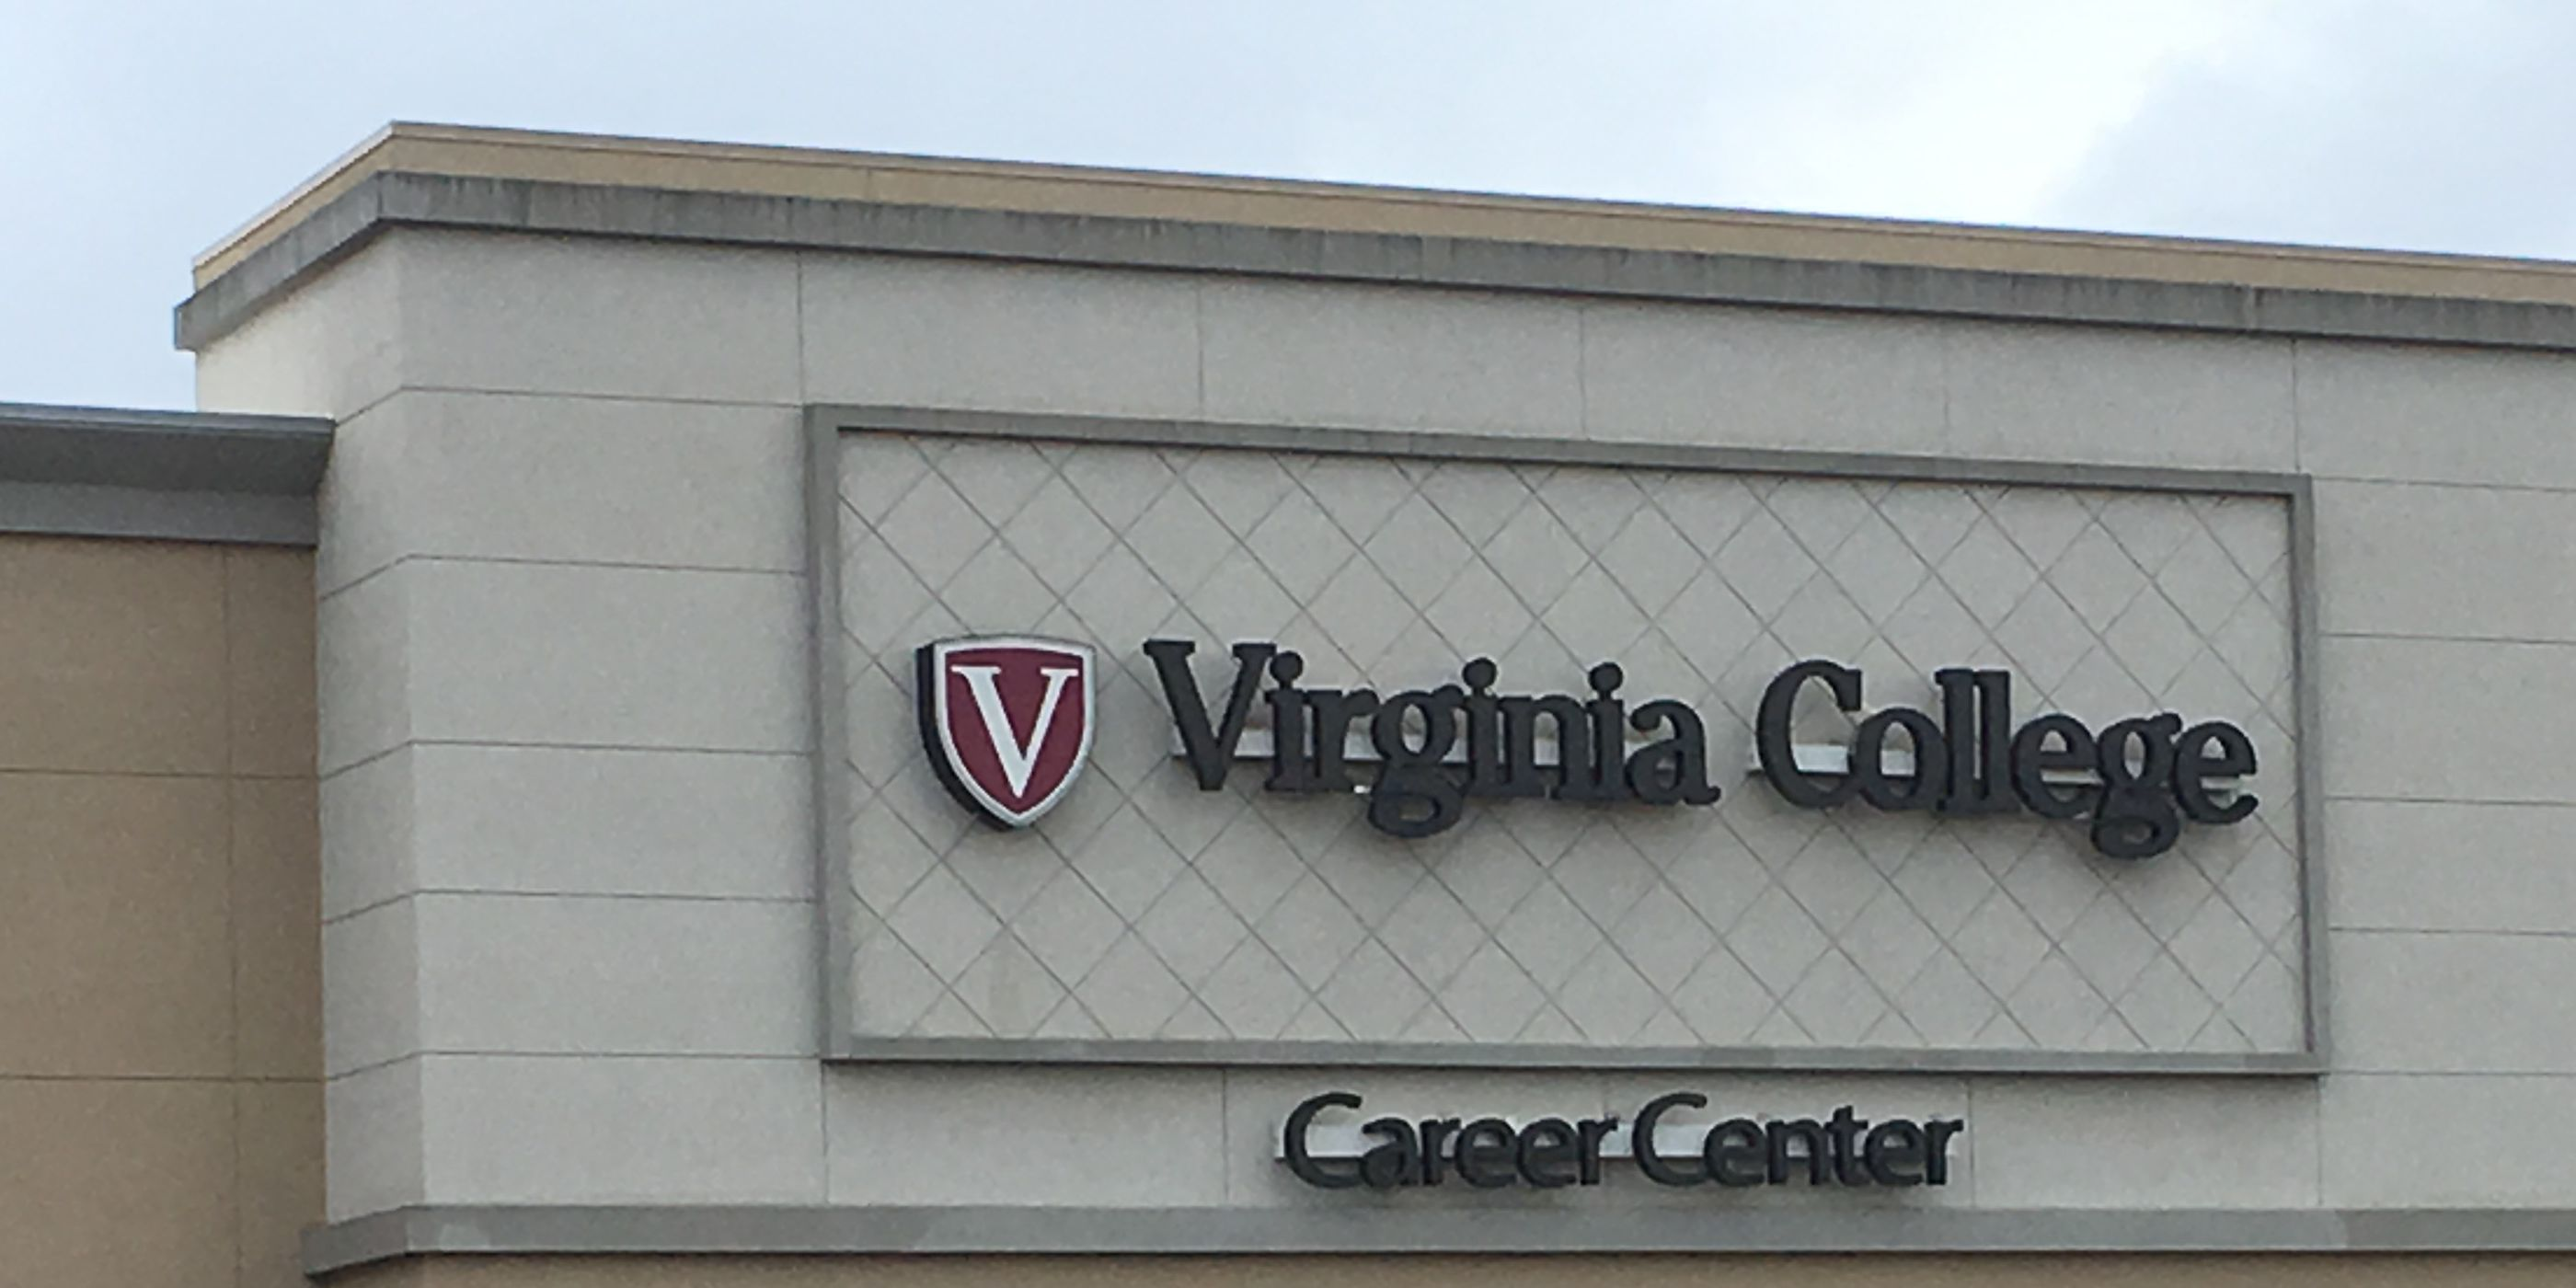 Virginia College closes due to loss of accreditation